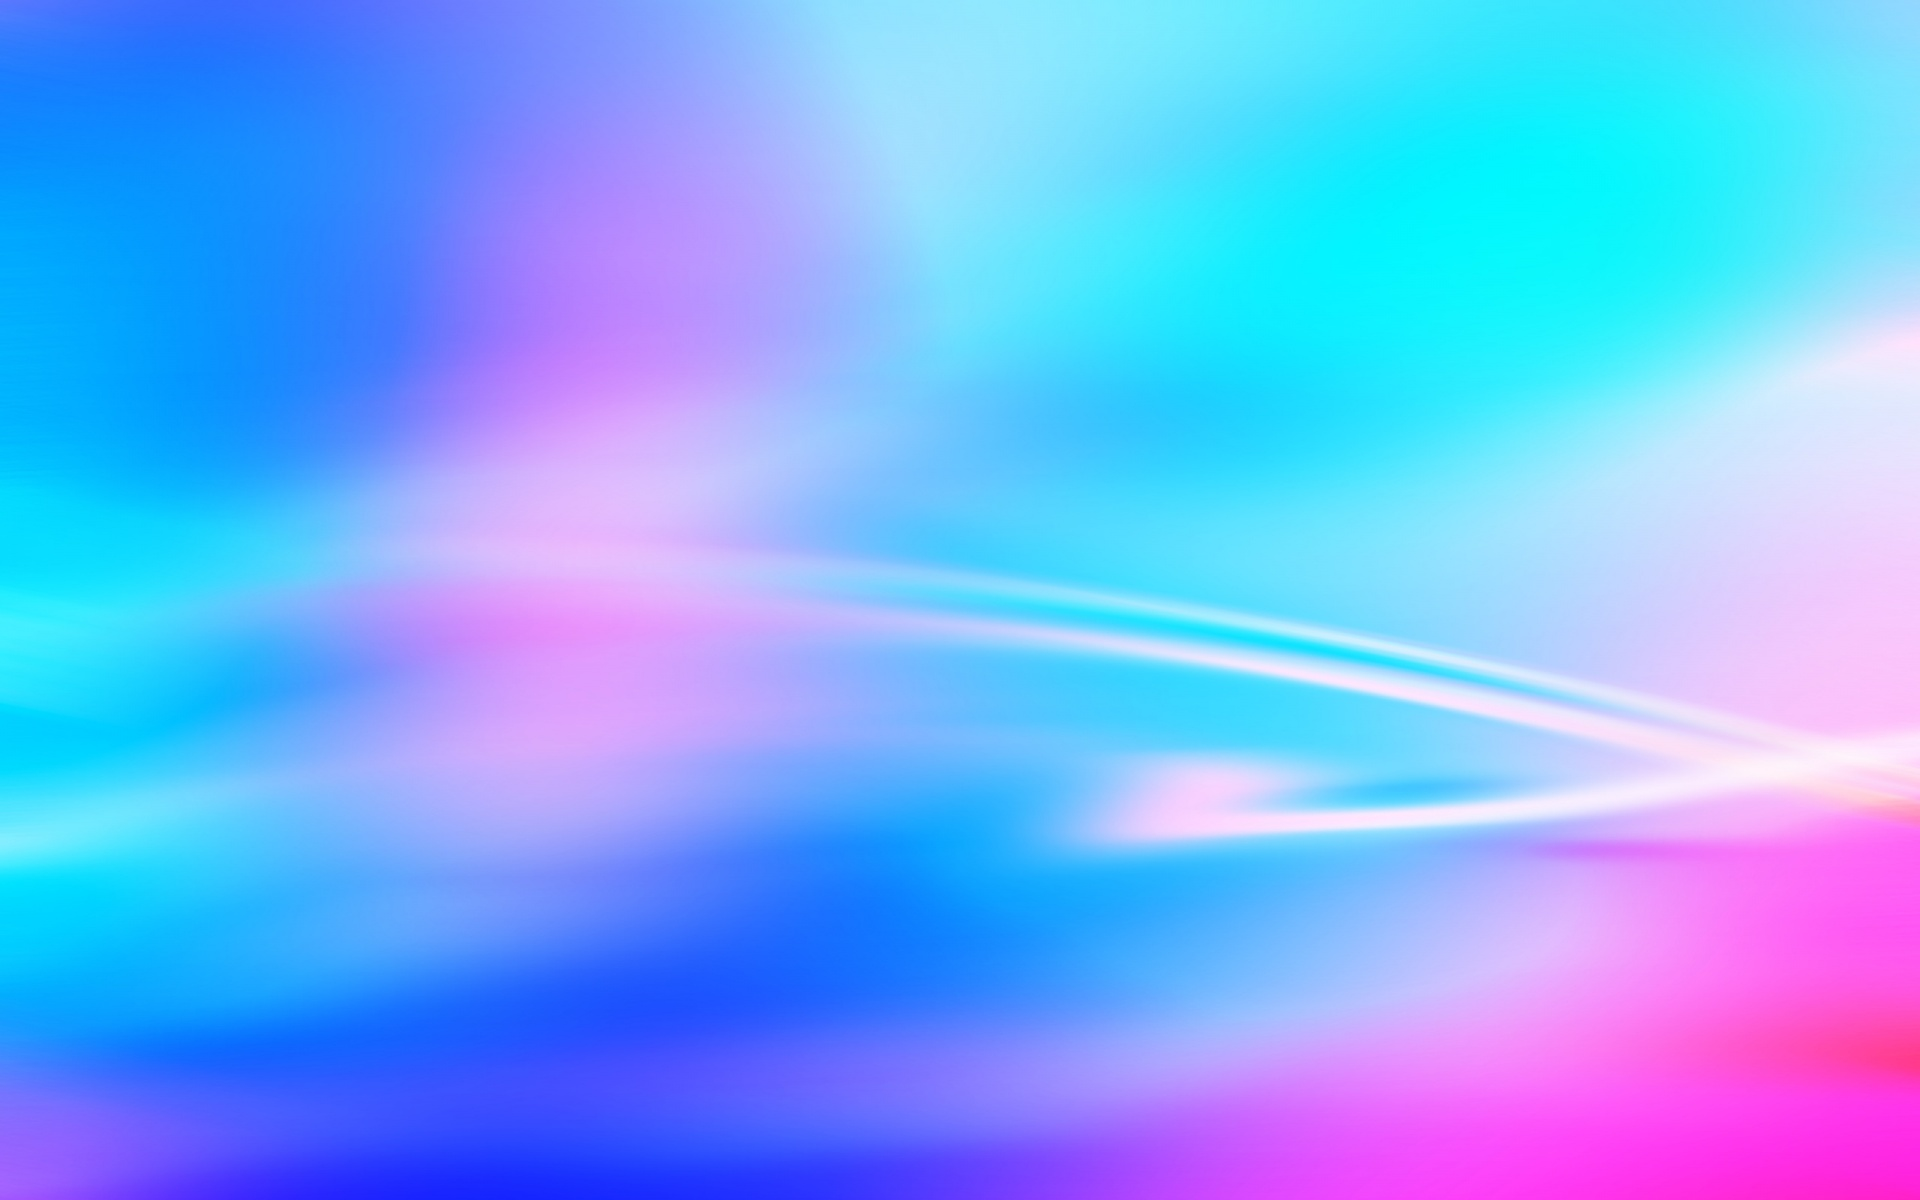 pink and blue background - HD1920×1080